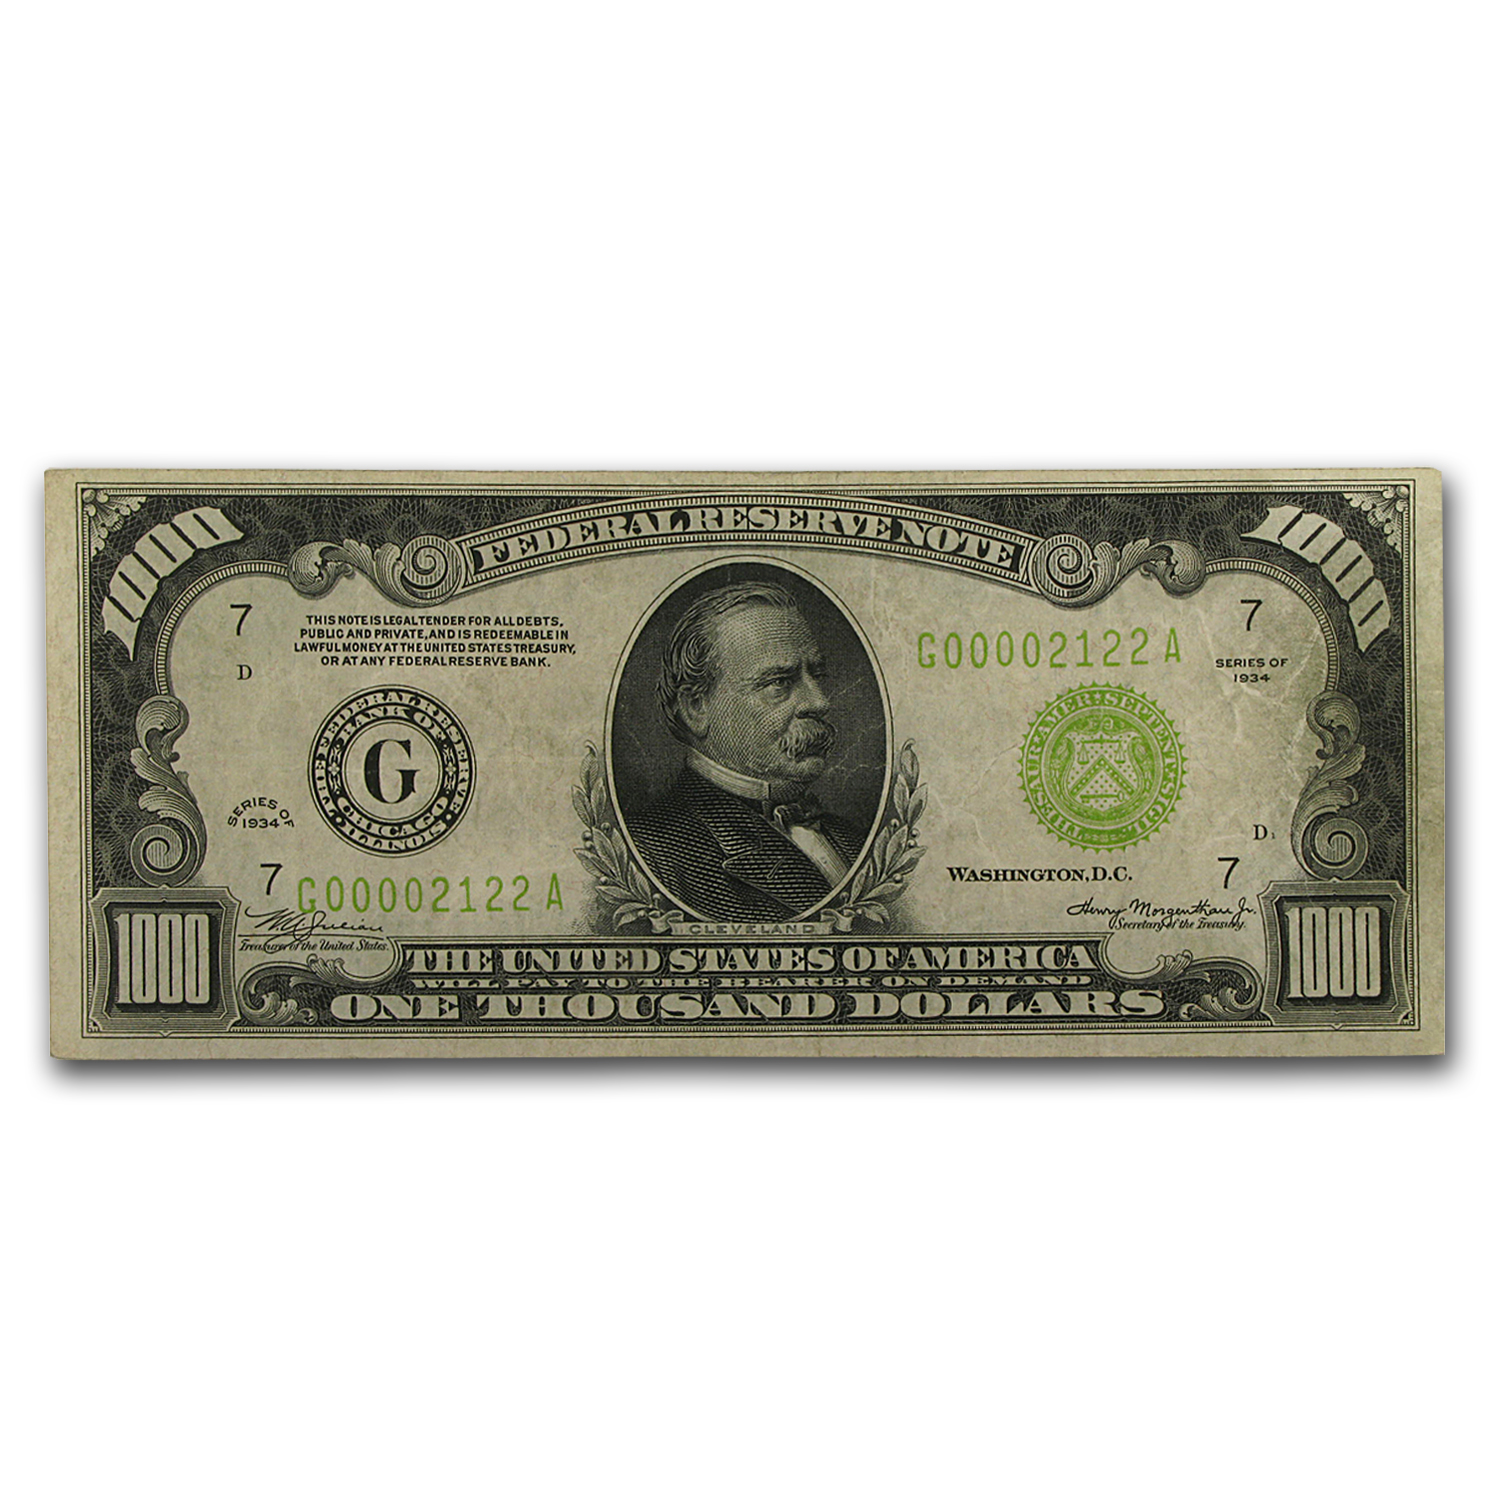 1934 (G-Chicago) $1,000 FRN VF+ (Light Green Seal)